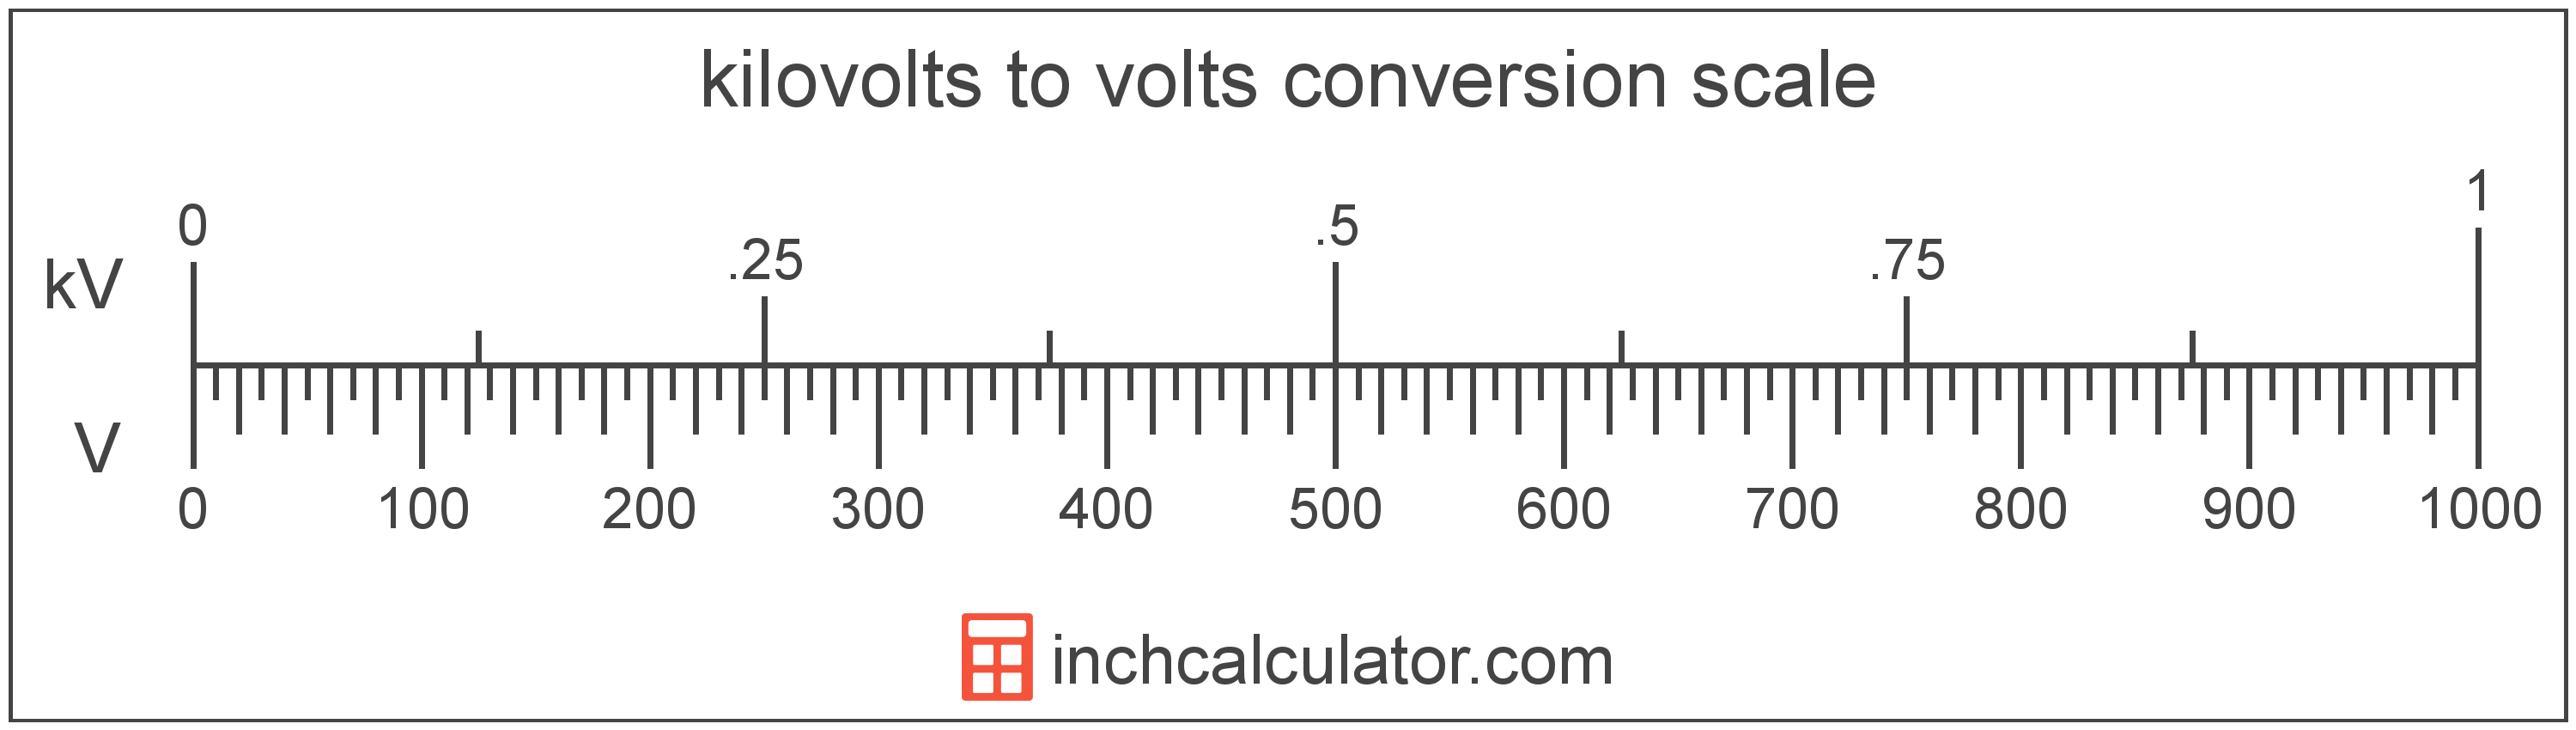 conversion scale showing volts and equivalent kilovolts voltage values